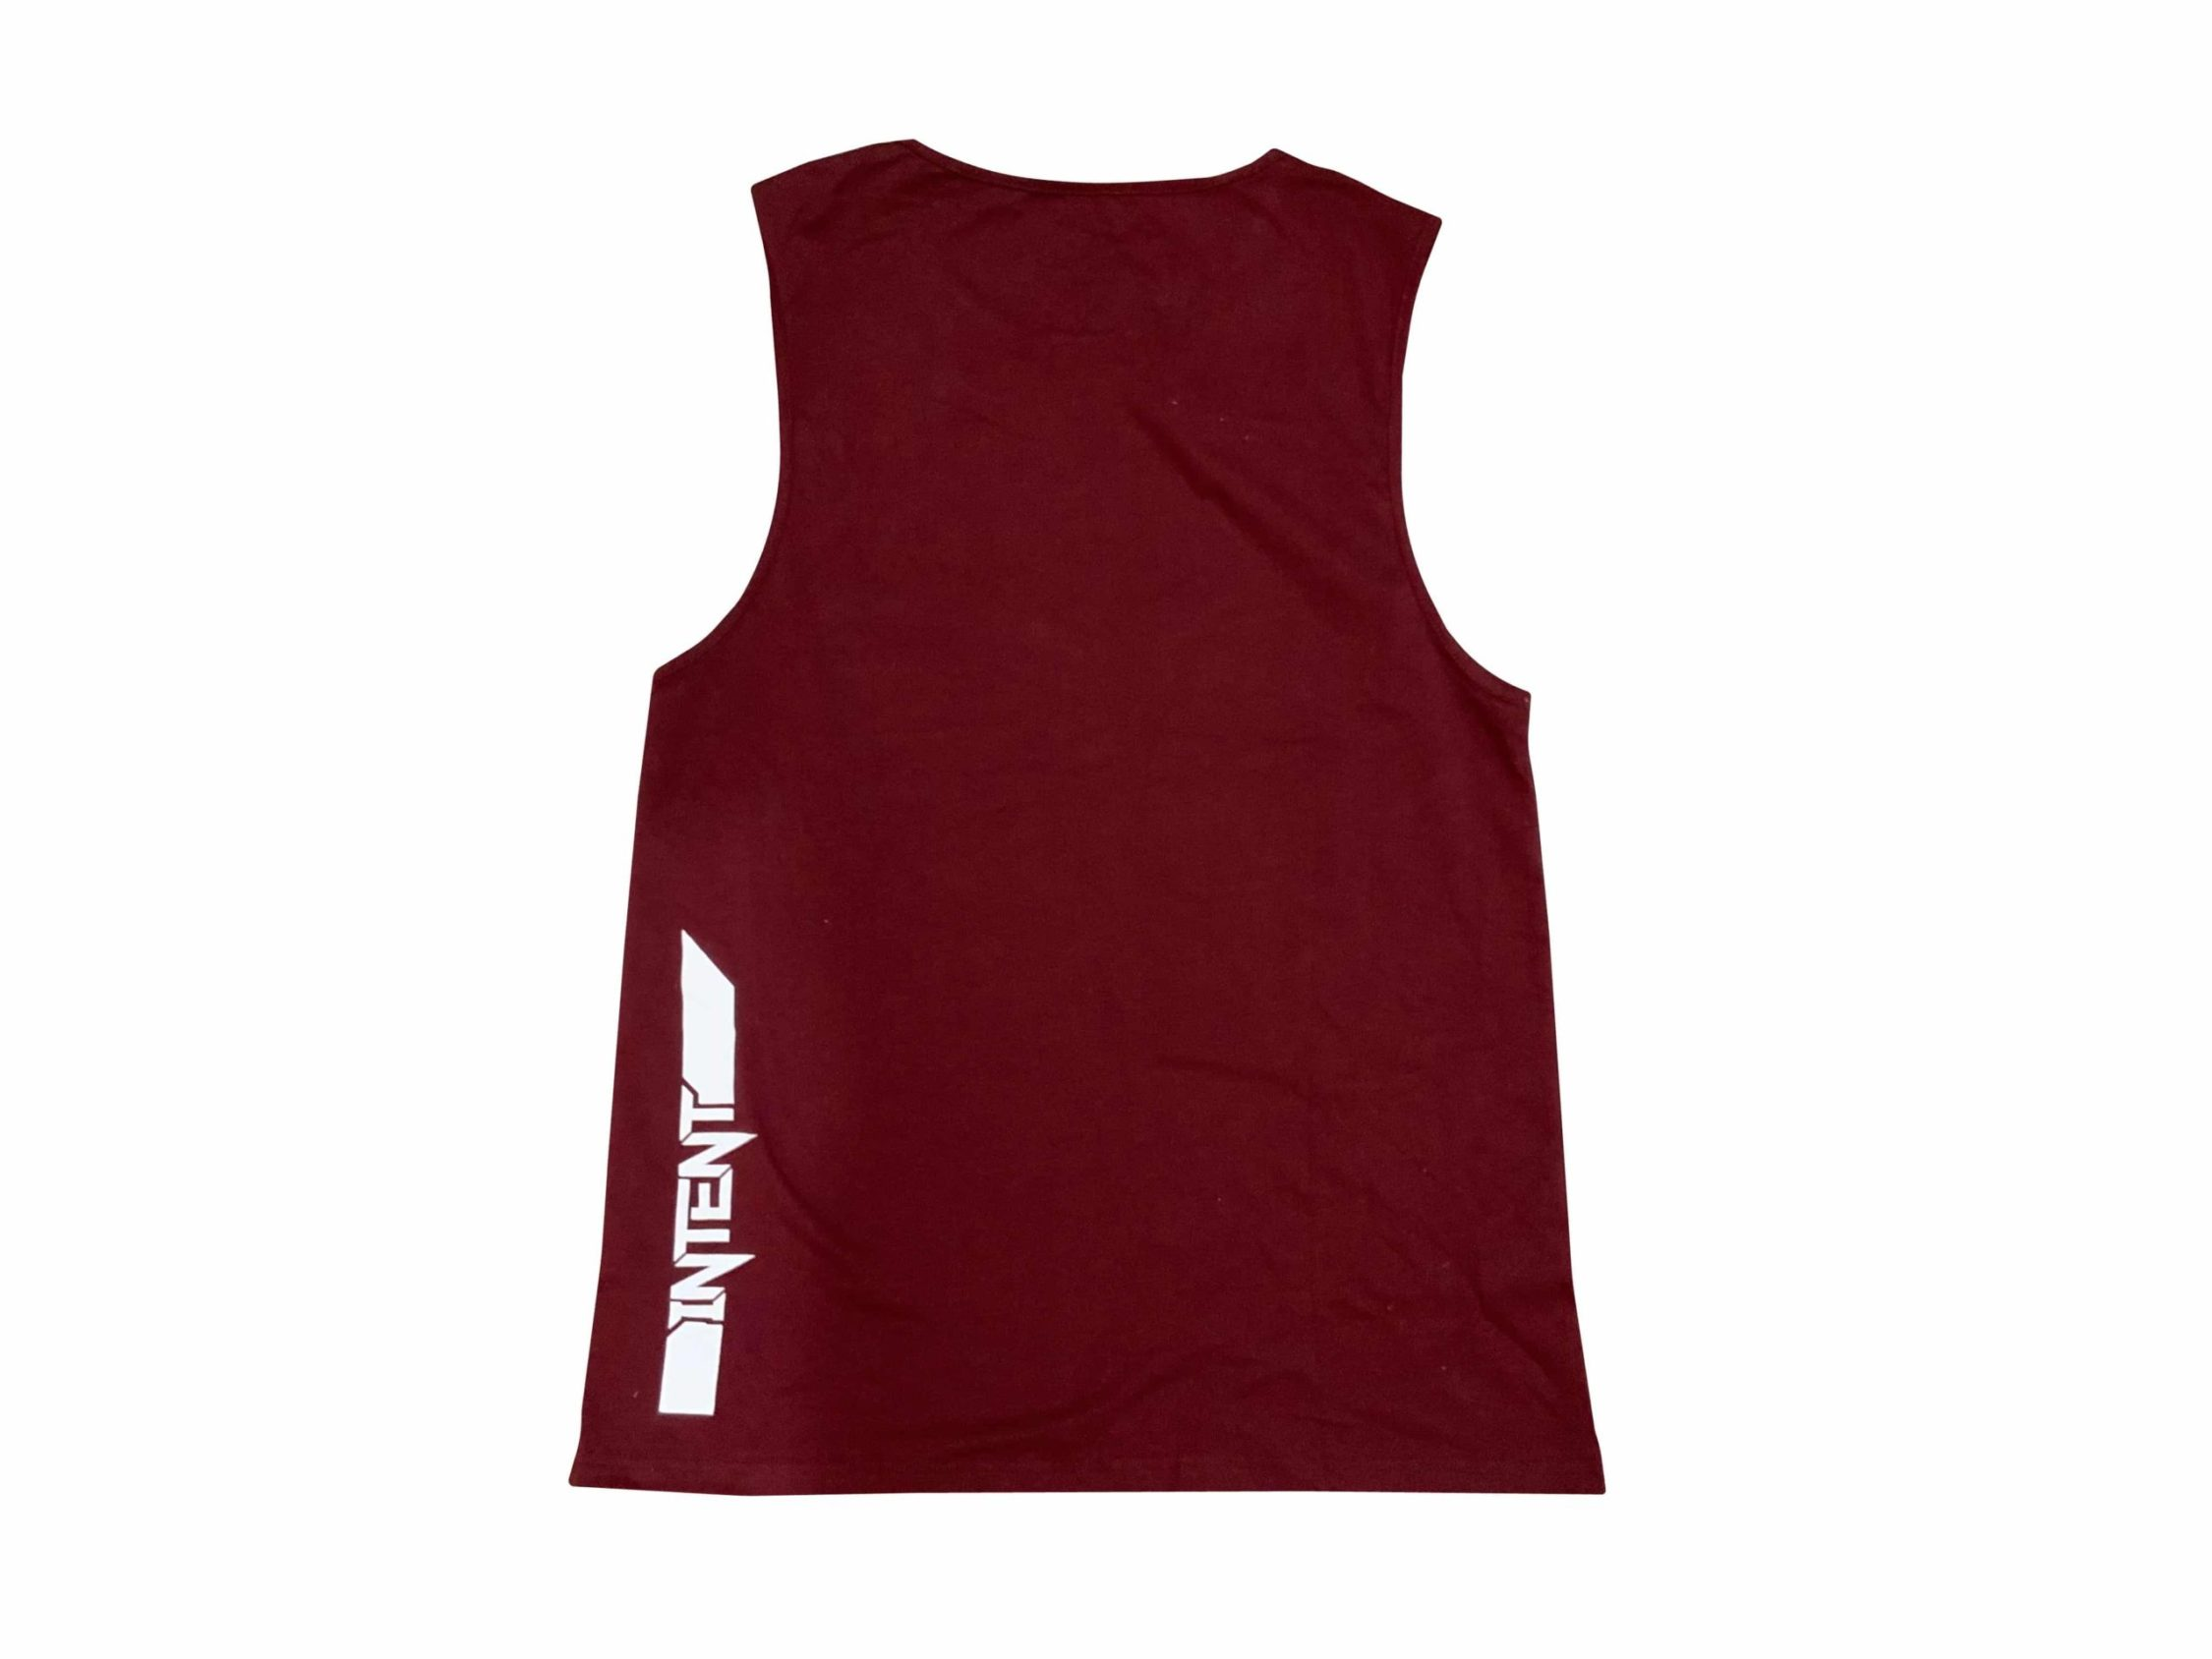 Intent Mx tank top